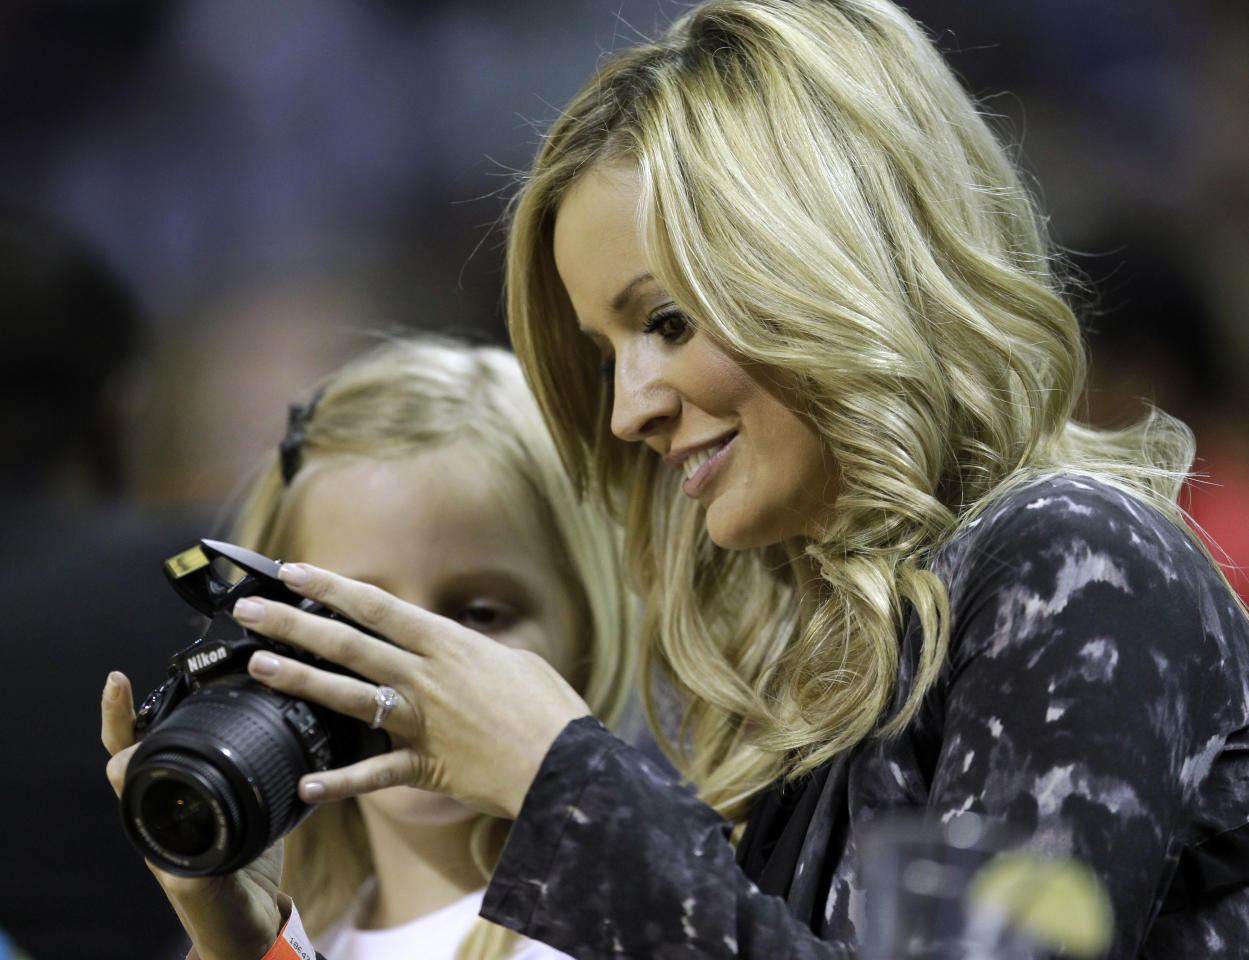 """Emily Maynard, right, looks at photos with her daughter, Ricki, left, in the second half of the Wizards' 97-91 win over the Charlotte Bobcats in an NBA basketball game in Charlotte, N.C., Sunday, April 3, 2011. Maynard was the winner of """"The Bachelor"""" reality series this season."""